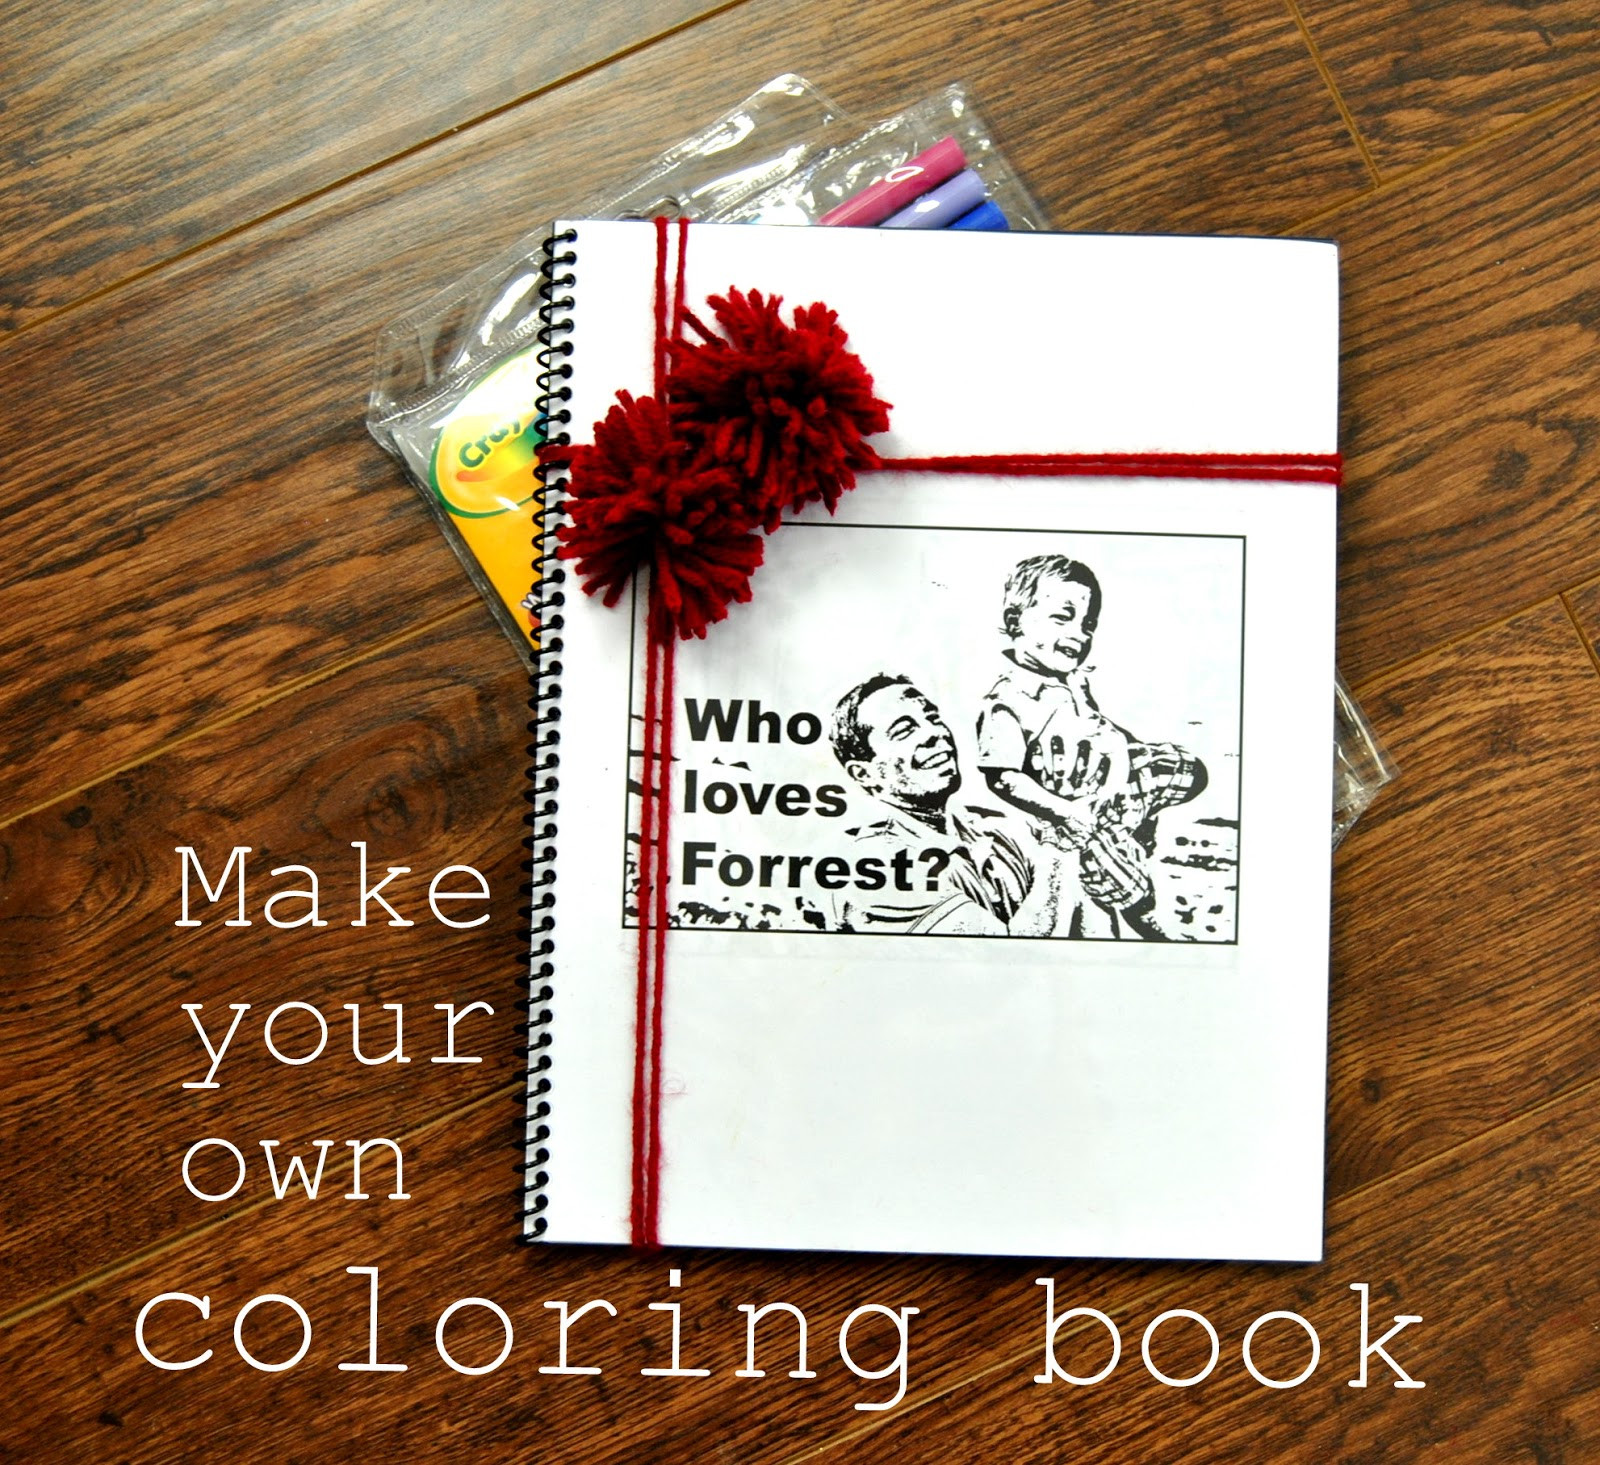 Create A Coloring Book  EAT SLEEP MAKE SYS Make Your Own Coloring Book Rachel